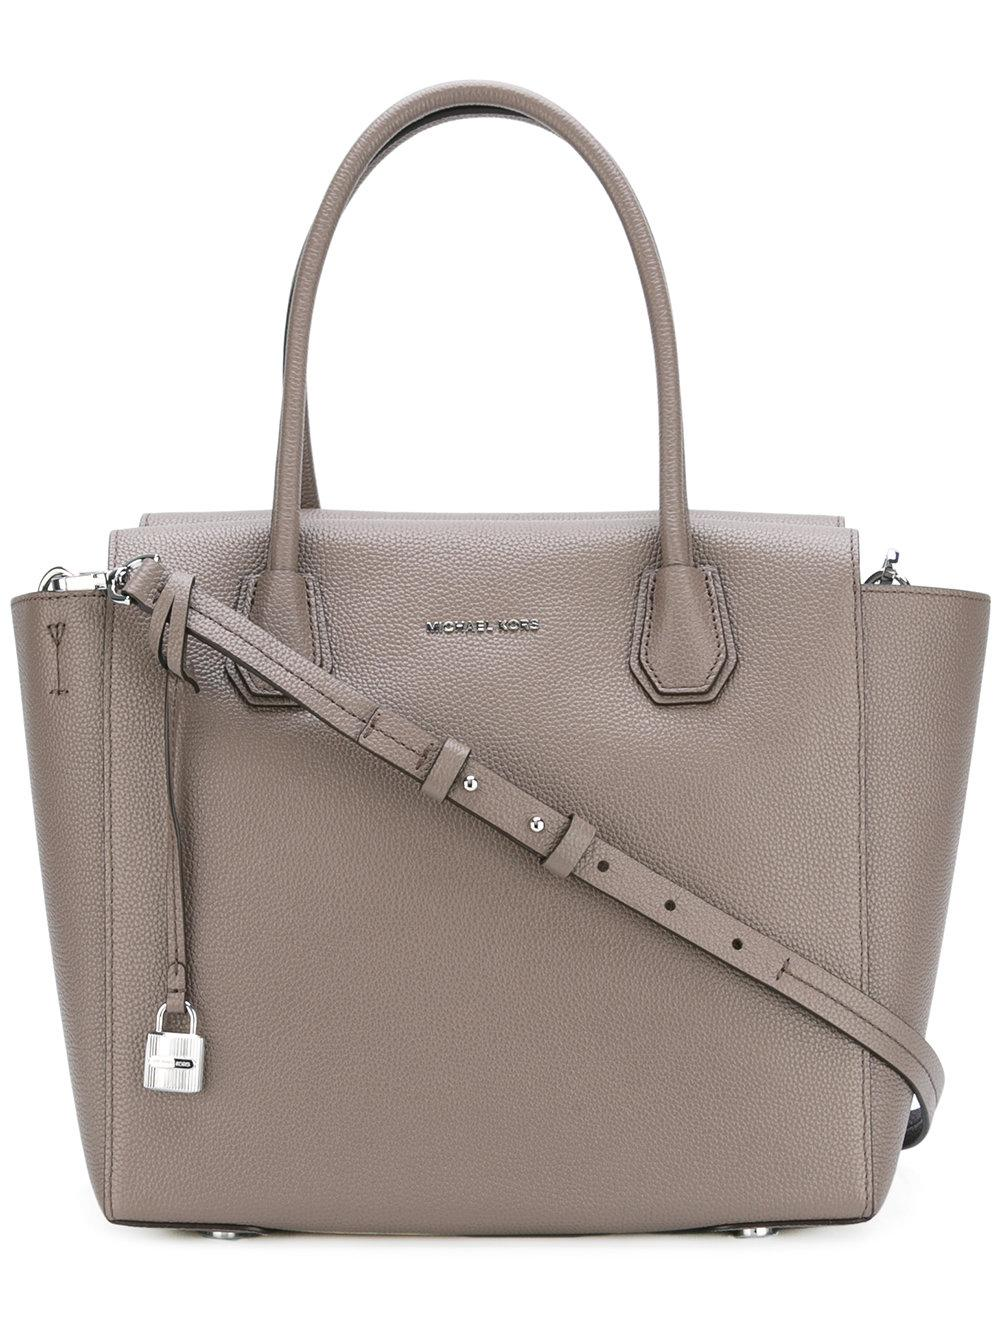 michael michael kors shopper tote in gray lyst. Black Bedroom Furniture Sets. Home Design Ideas